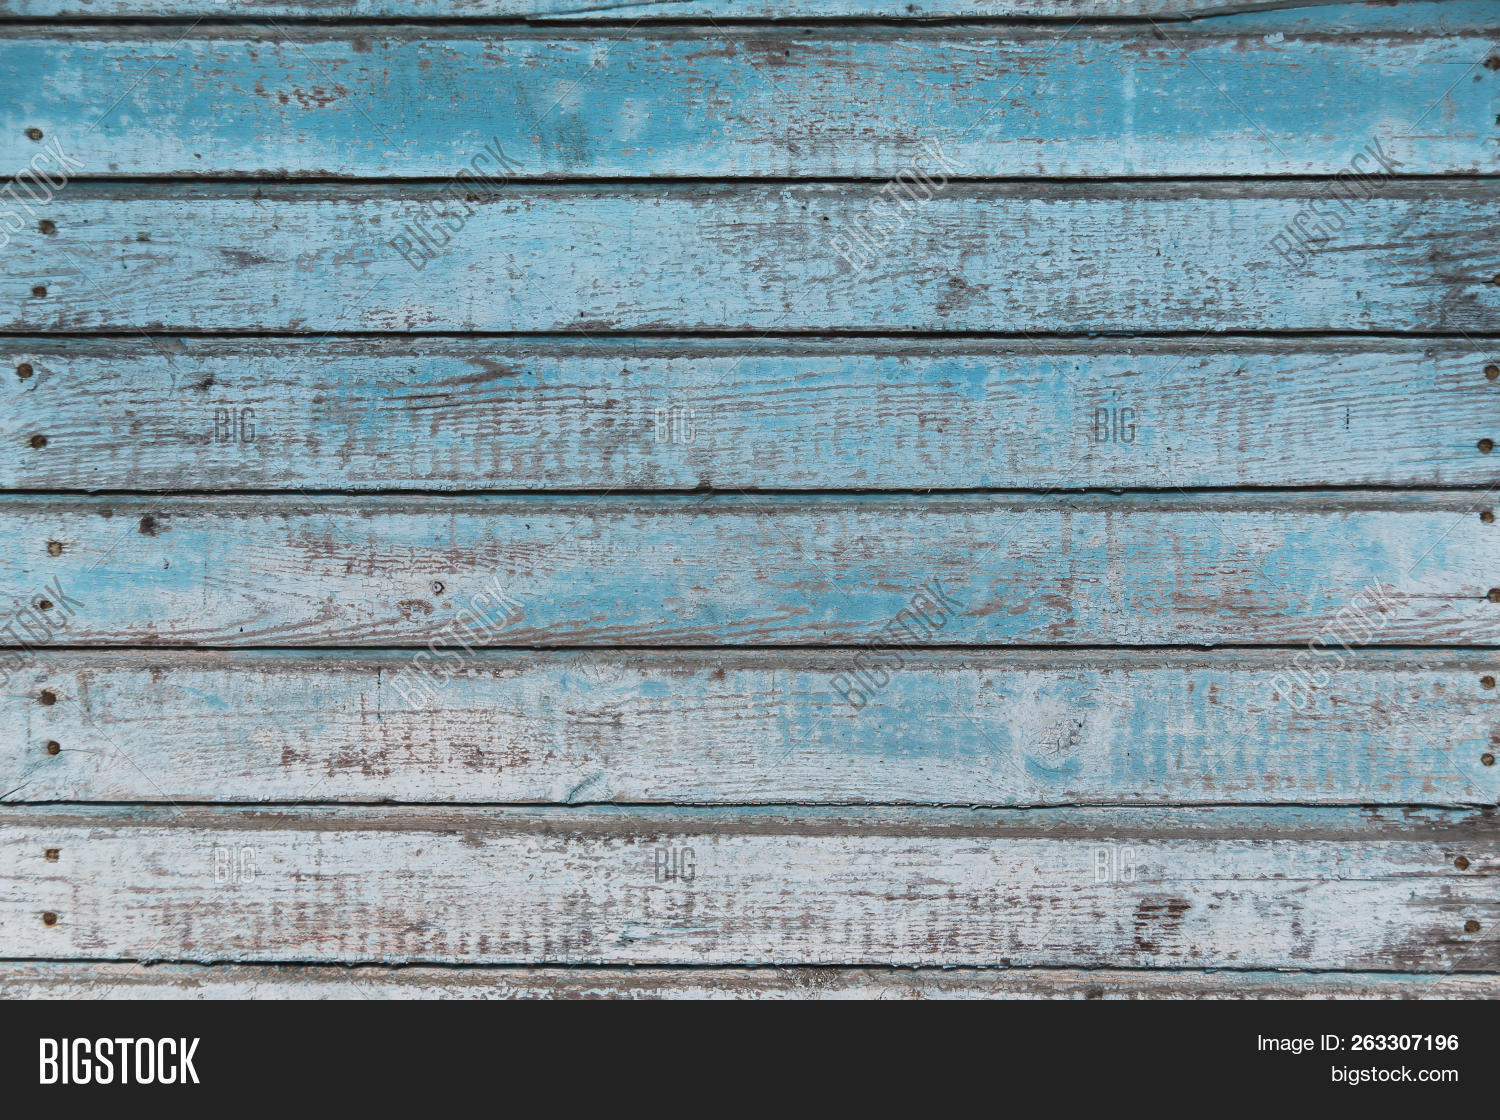 abstract,architecture,backdrop,background,beam,blue,board,brown,closeup,decor,decoration,decorative,design,exterior,facing,fence,gray,hardwood,light,line,lining,material,natural,nature,old,outdoor,pale,panel,pattern,plank,retro,rough,rustic,style,surface,terquouse,texture,textured,timber,vintage,wall,wood,woodden,wooden